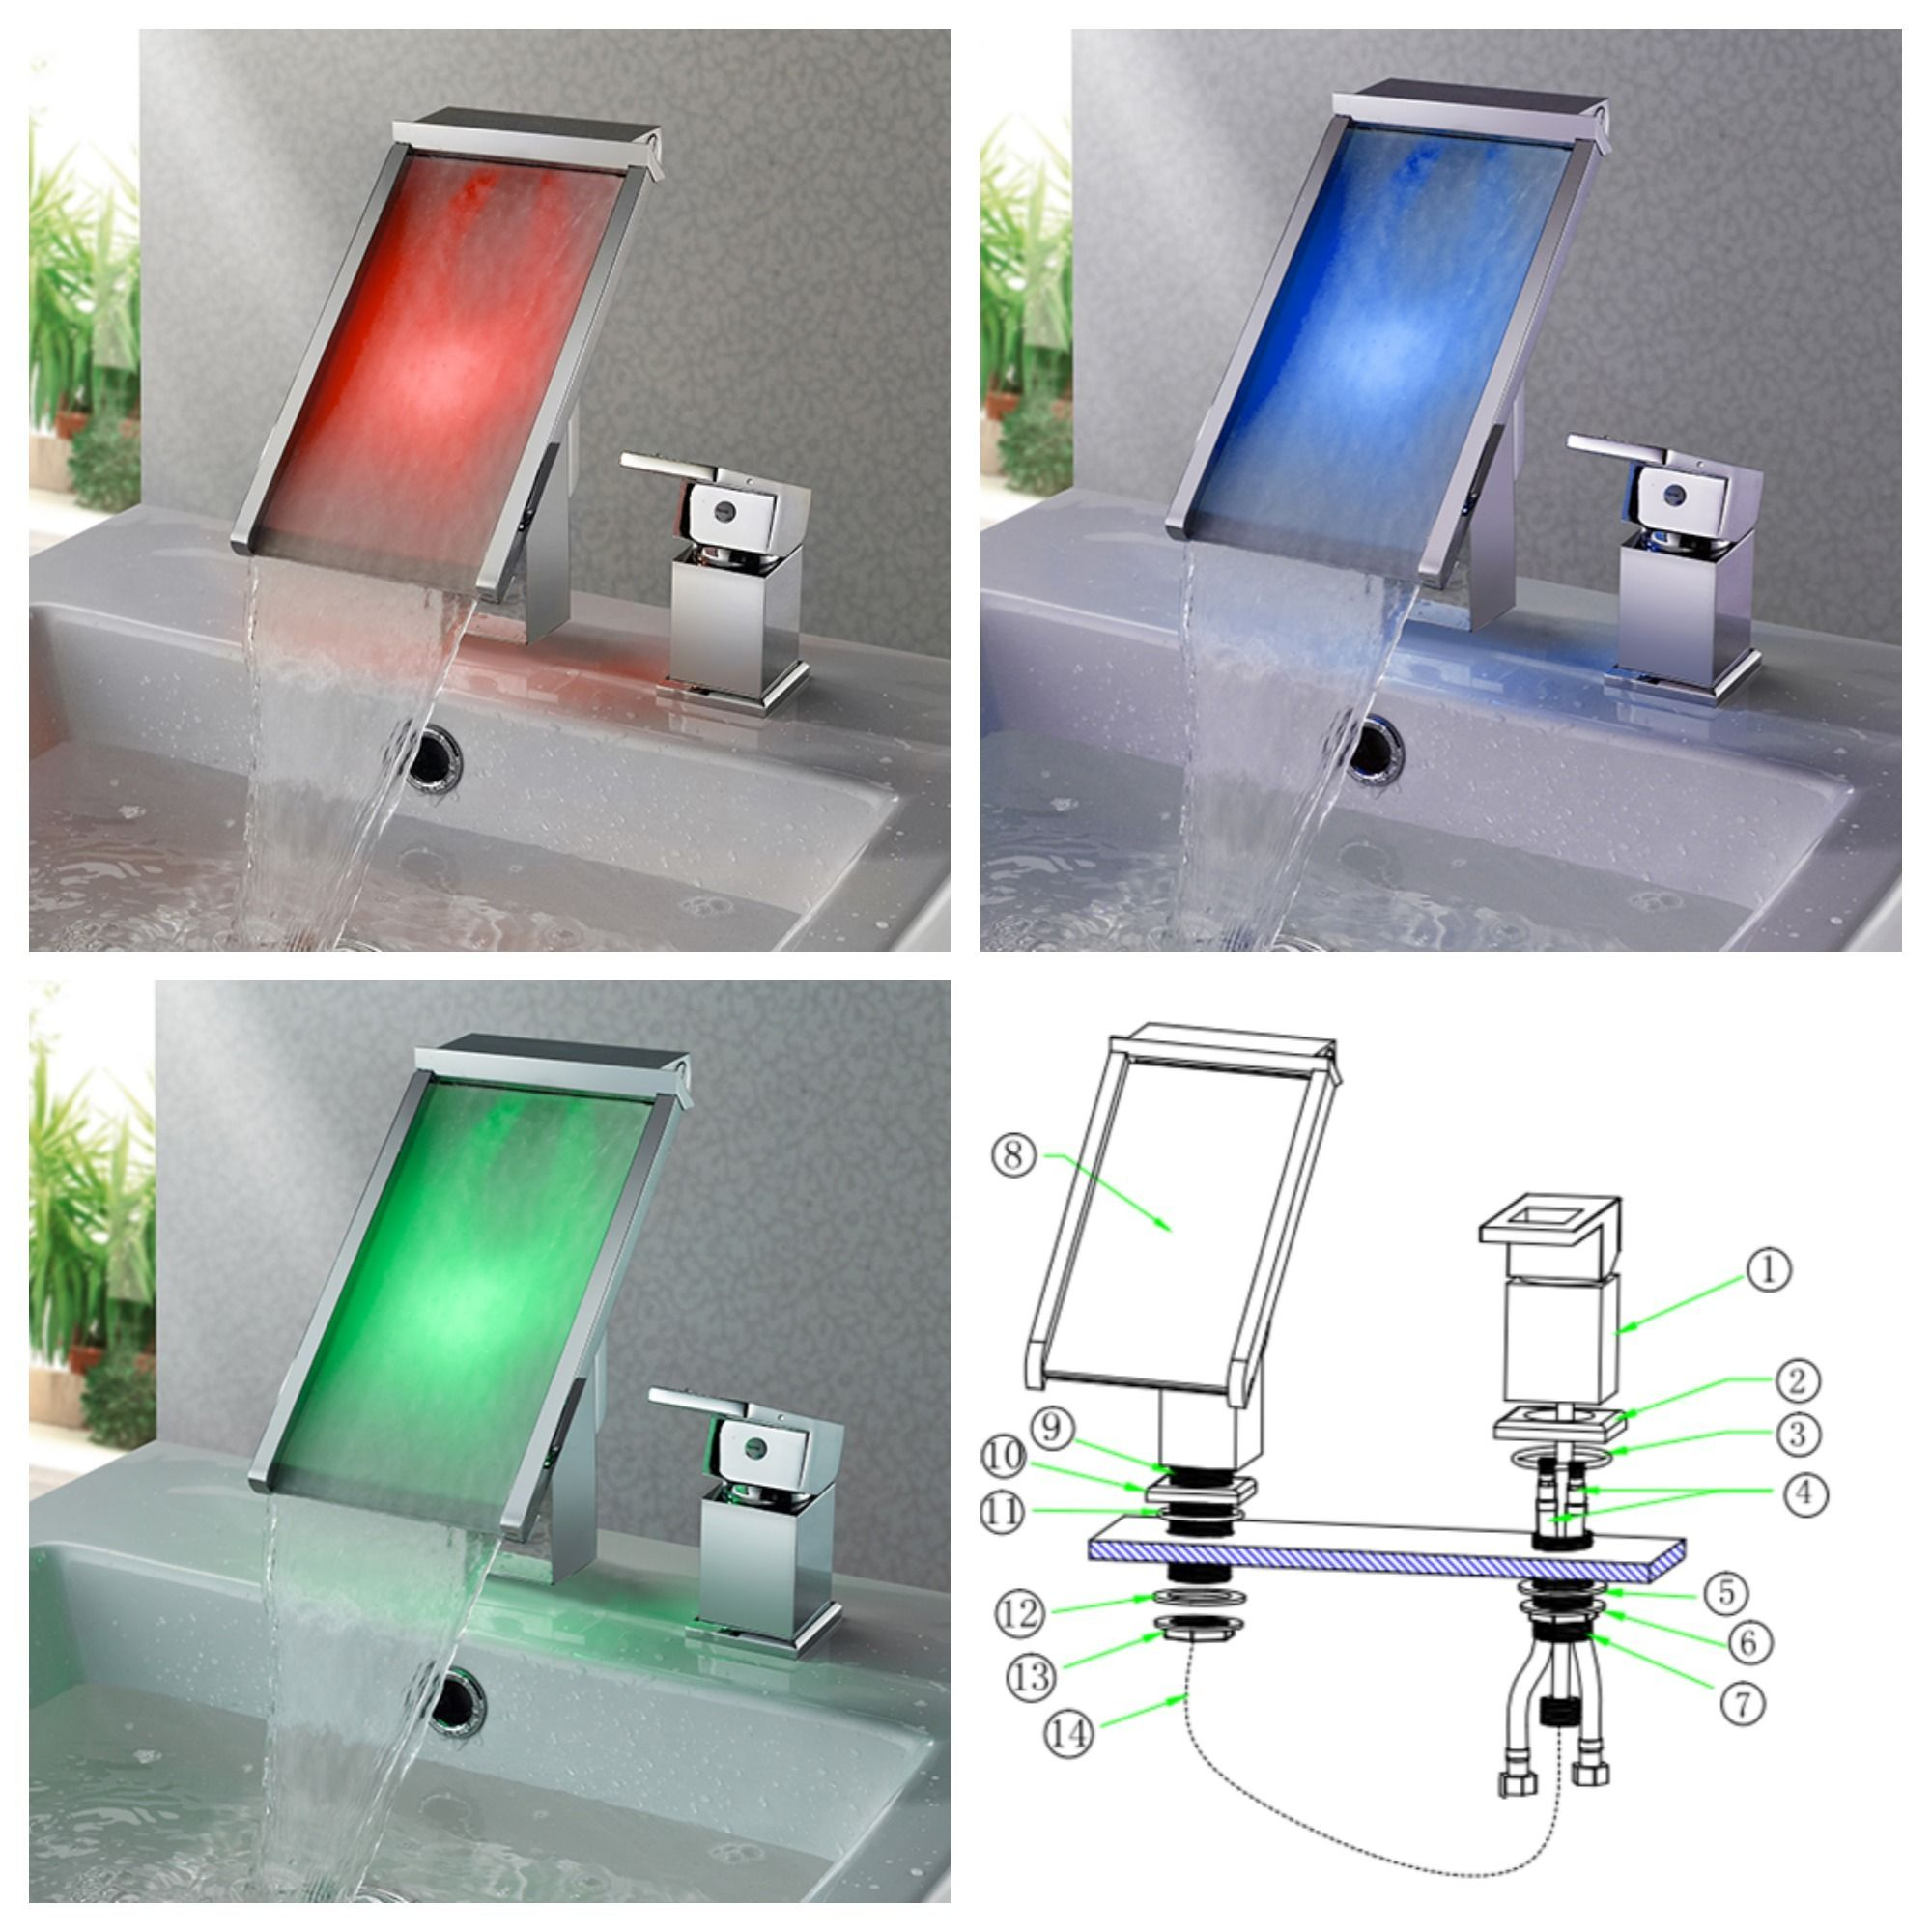 Pin By Manda Zhou On Led Waterfall Faucets Waterfall Faucet